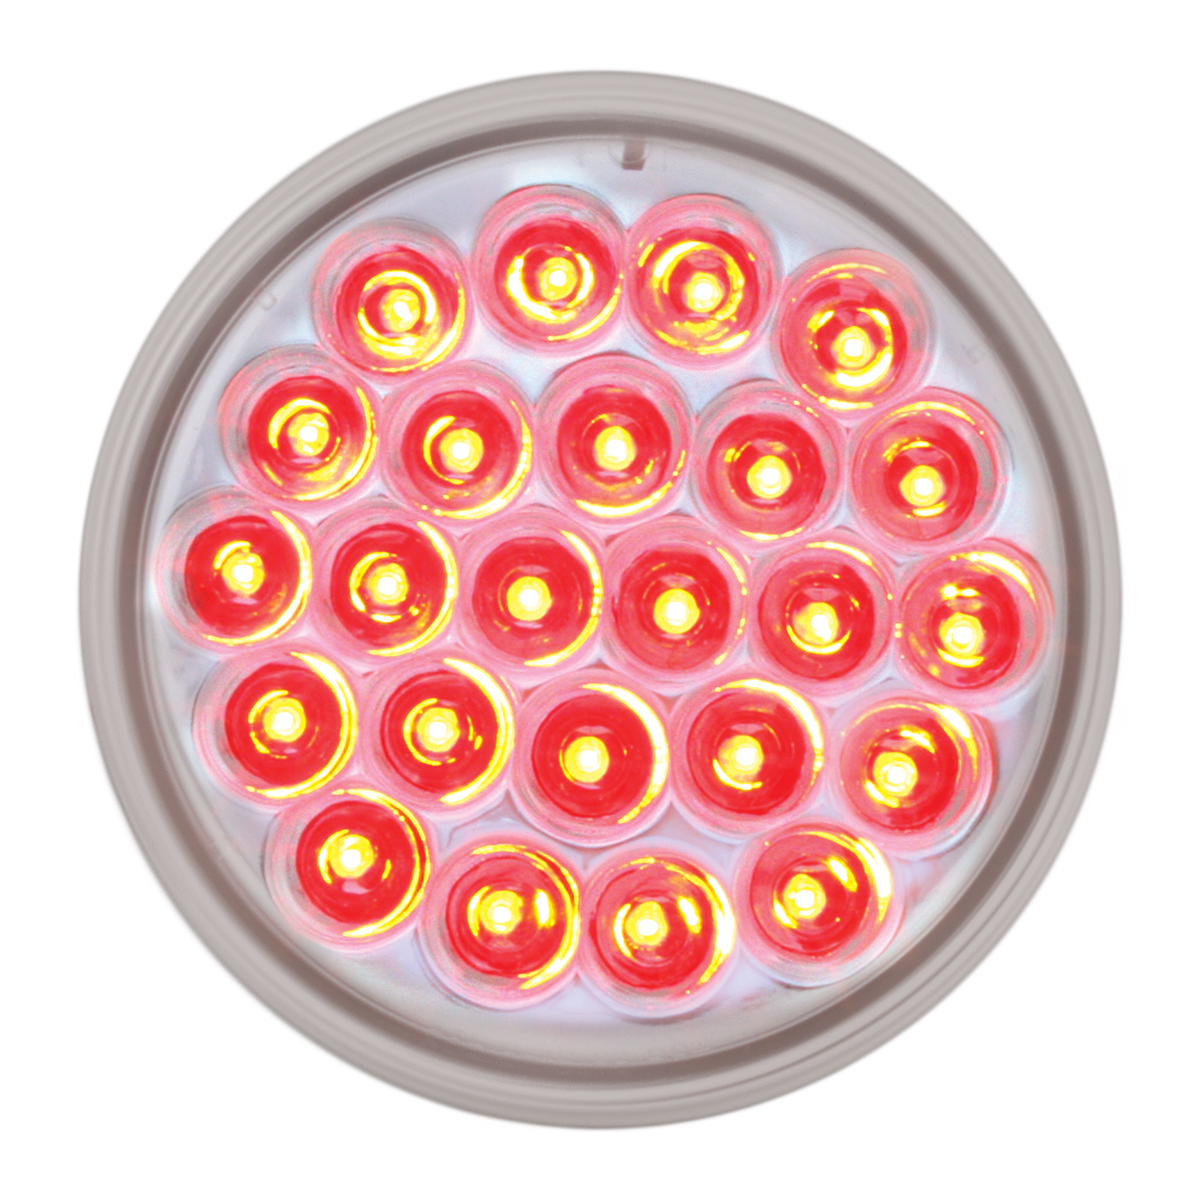 "4"" Round Synchronous/Alternating Pearl LED Strobe Light in Red/Clear"